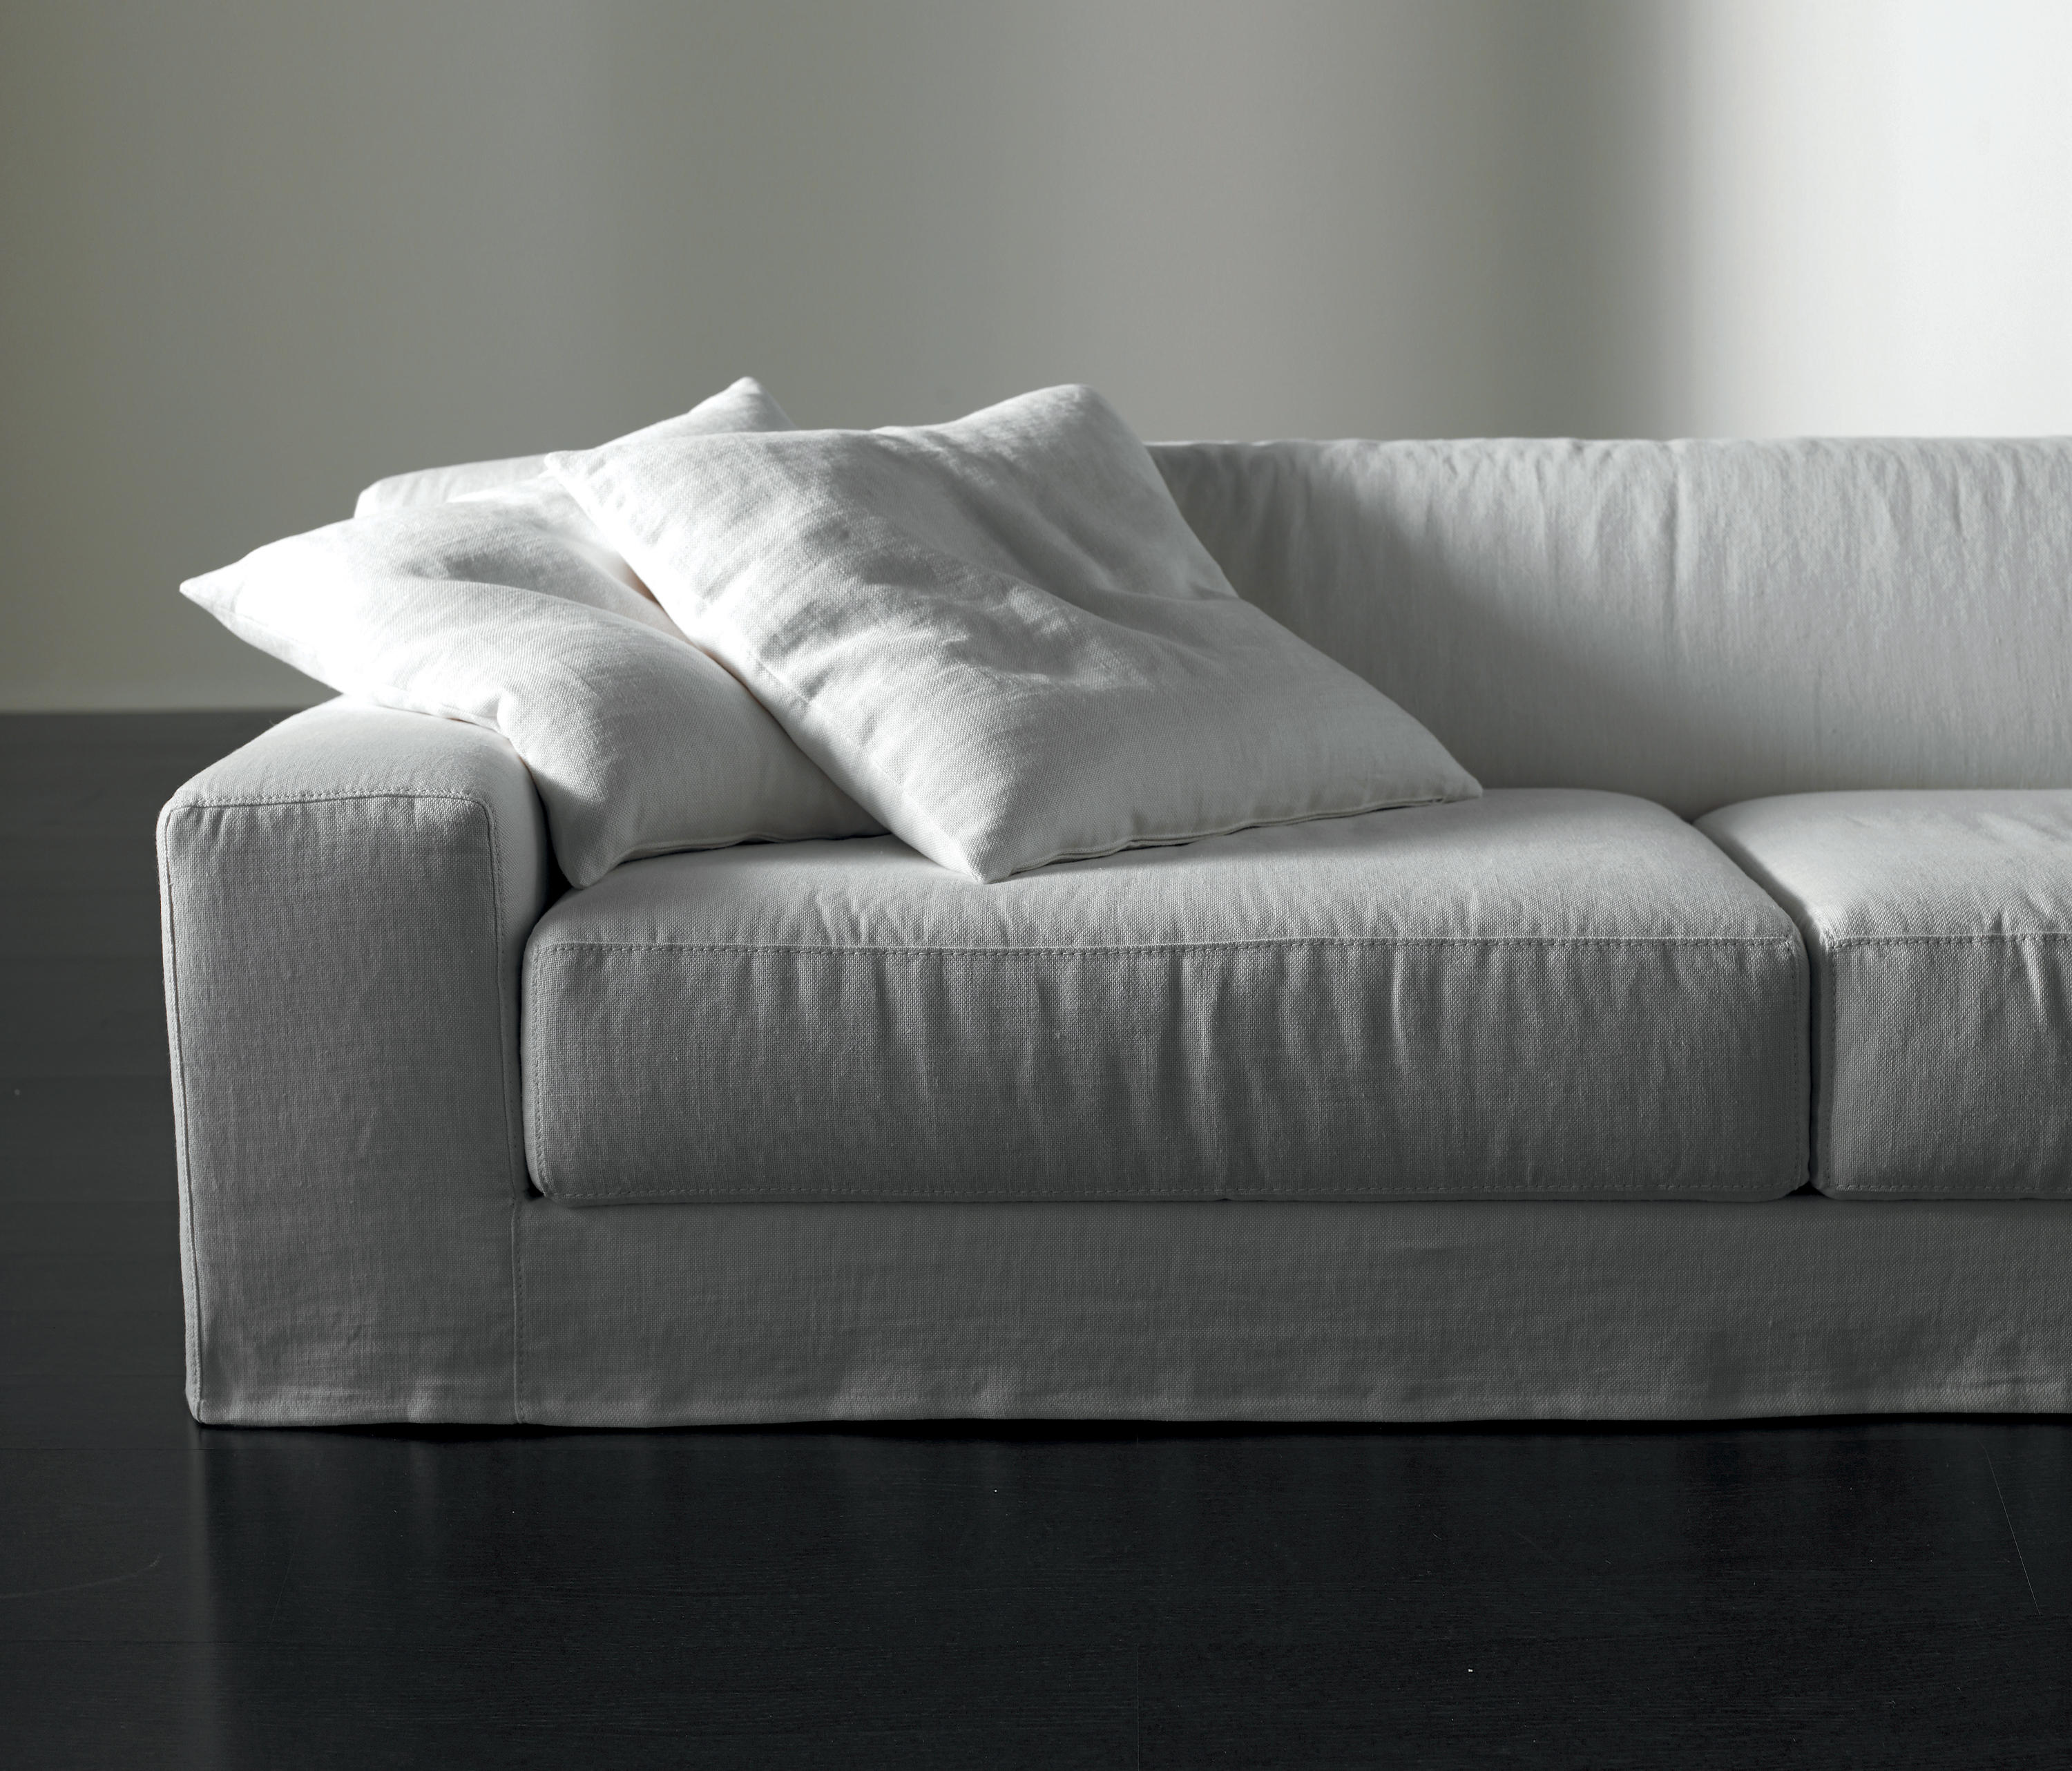 Frieman ghost sofa sofas from meridiani architonic frieman ghost sofa by meridiani sofas parisarafo Image collections